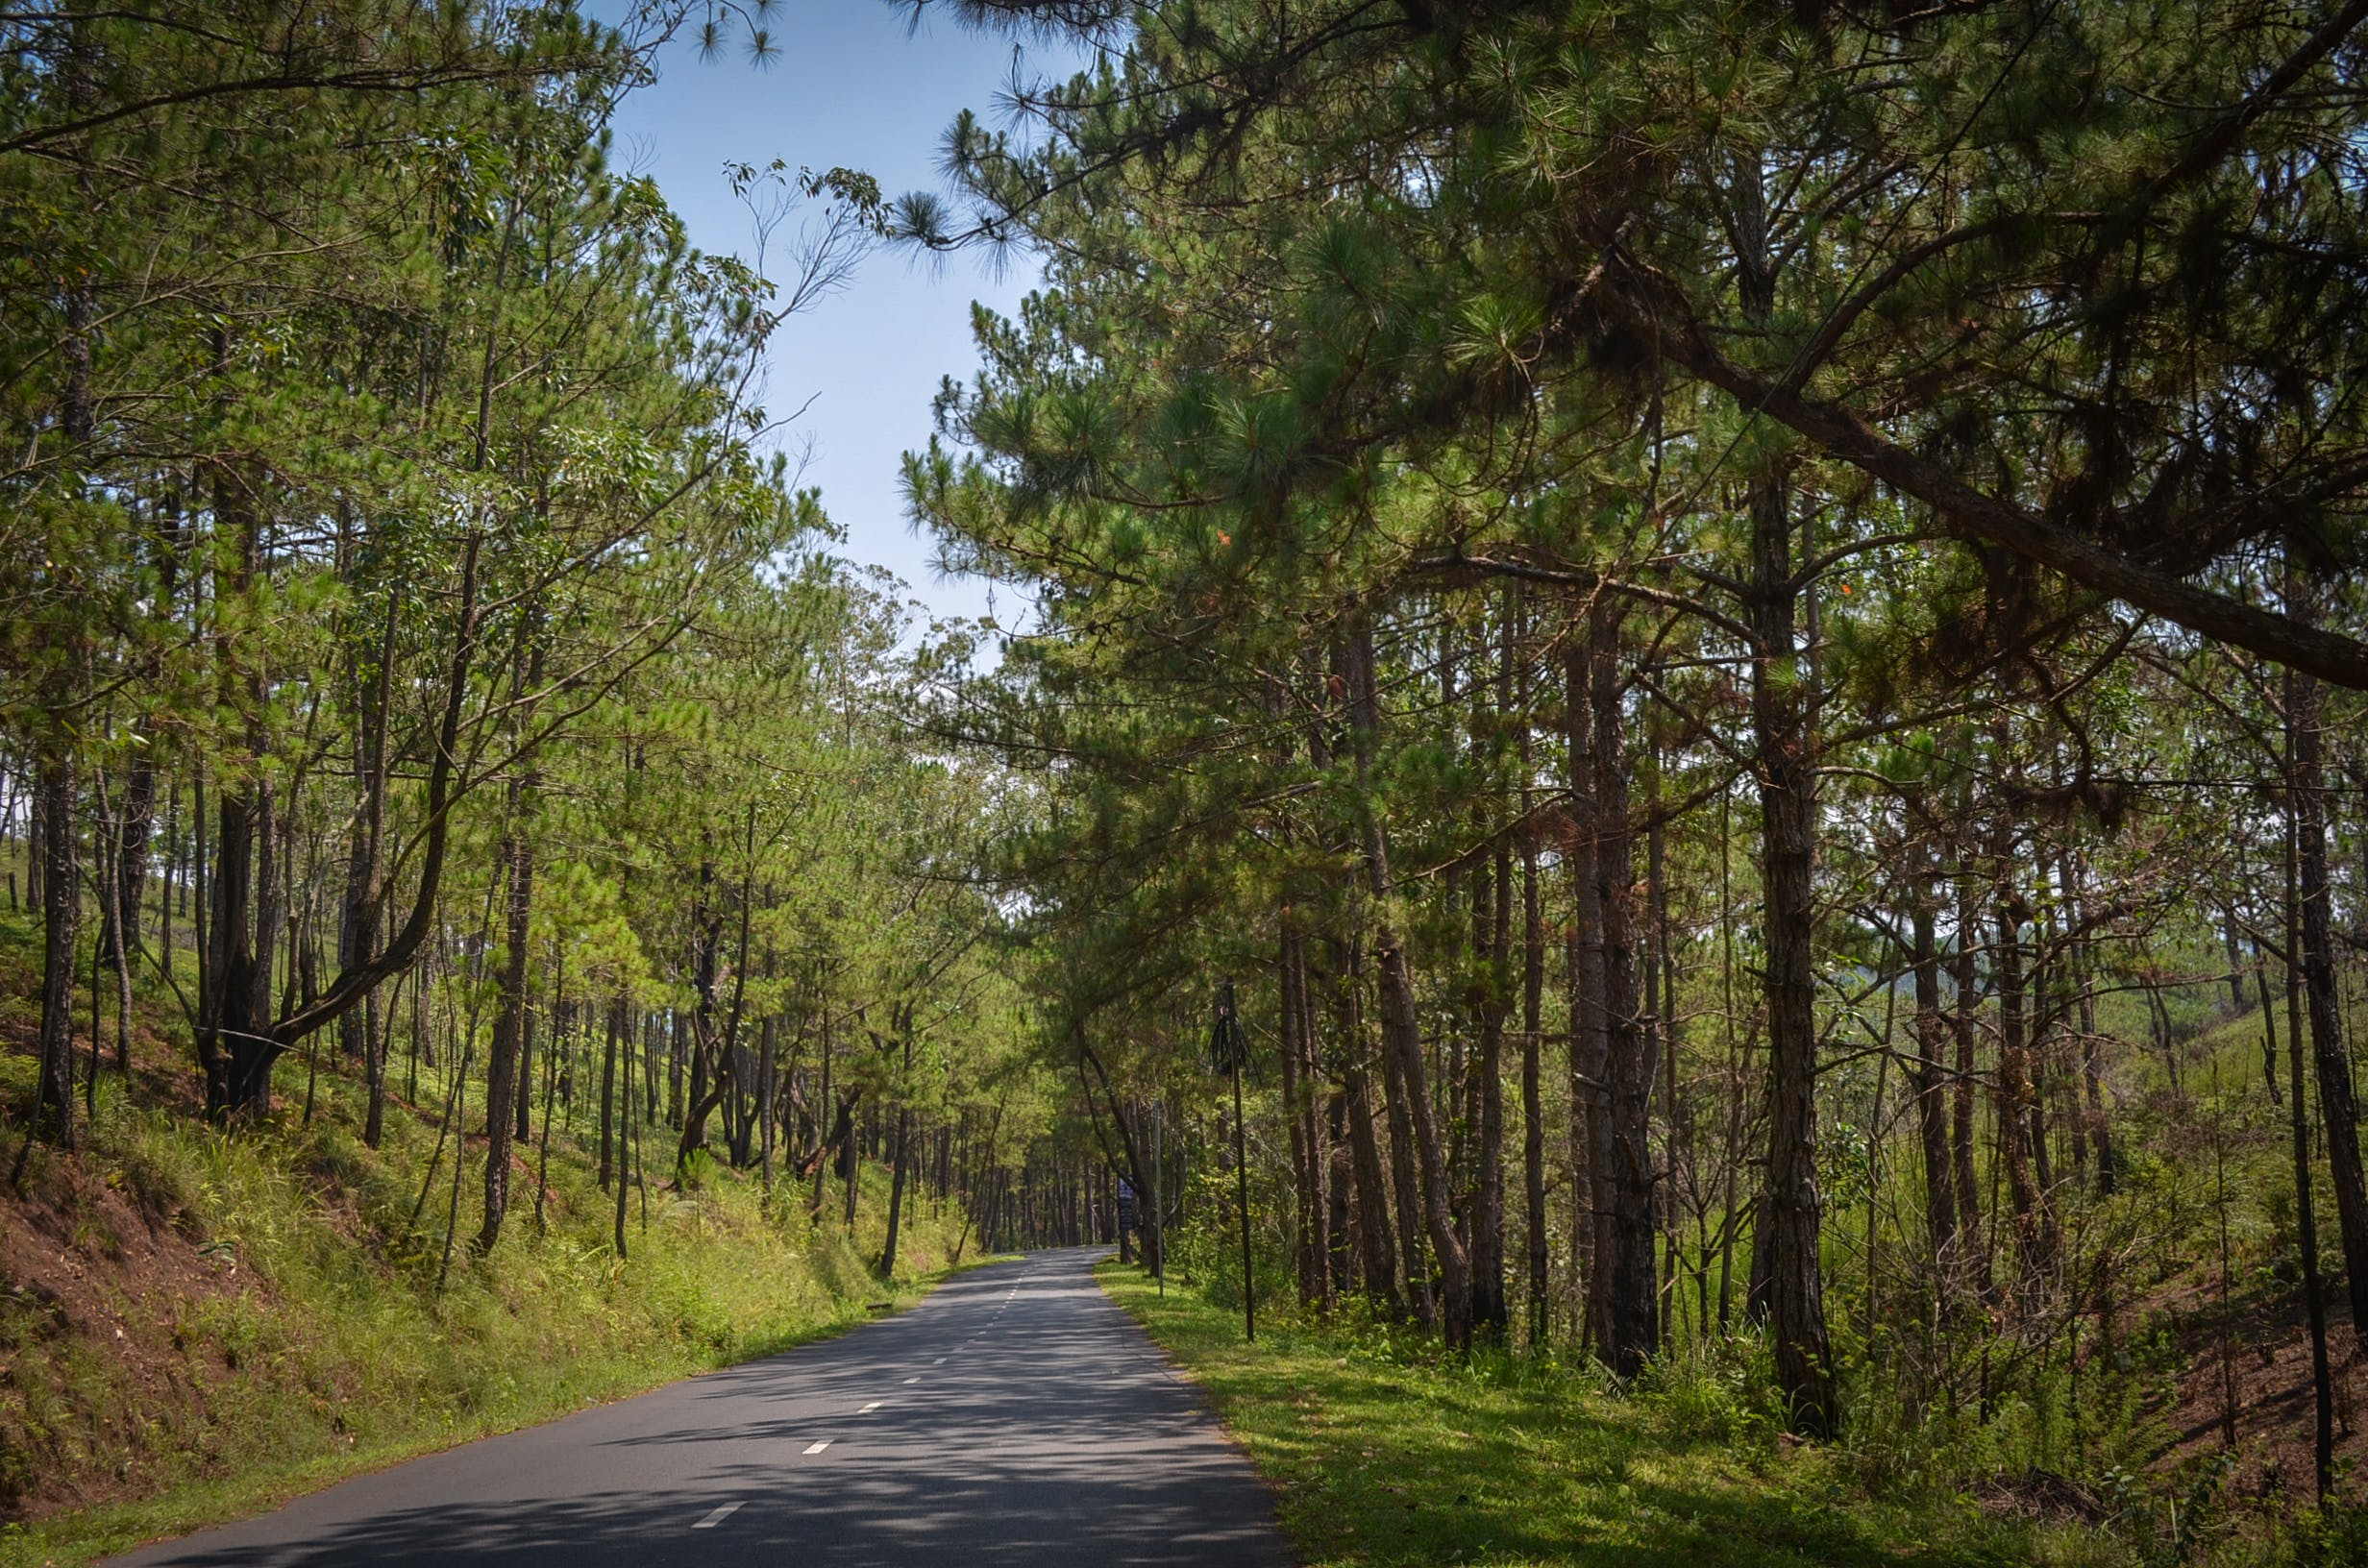 Free stock photo of countryside road, pine trees